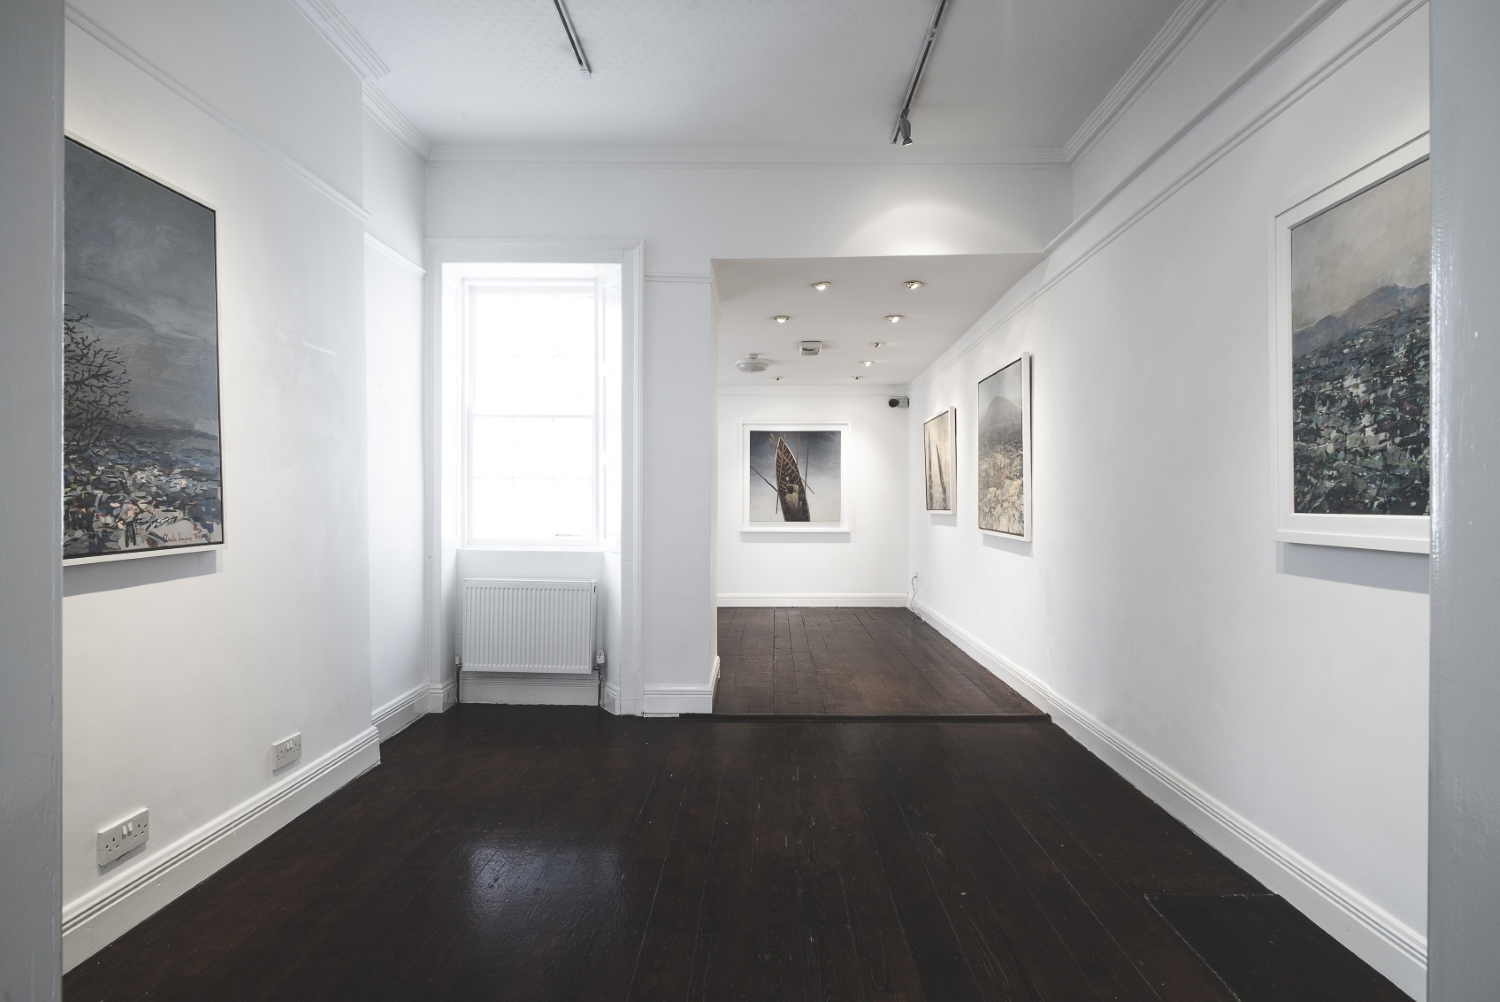 Hamilton Gallery Middle Room + Charles Harper